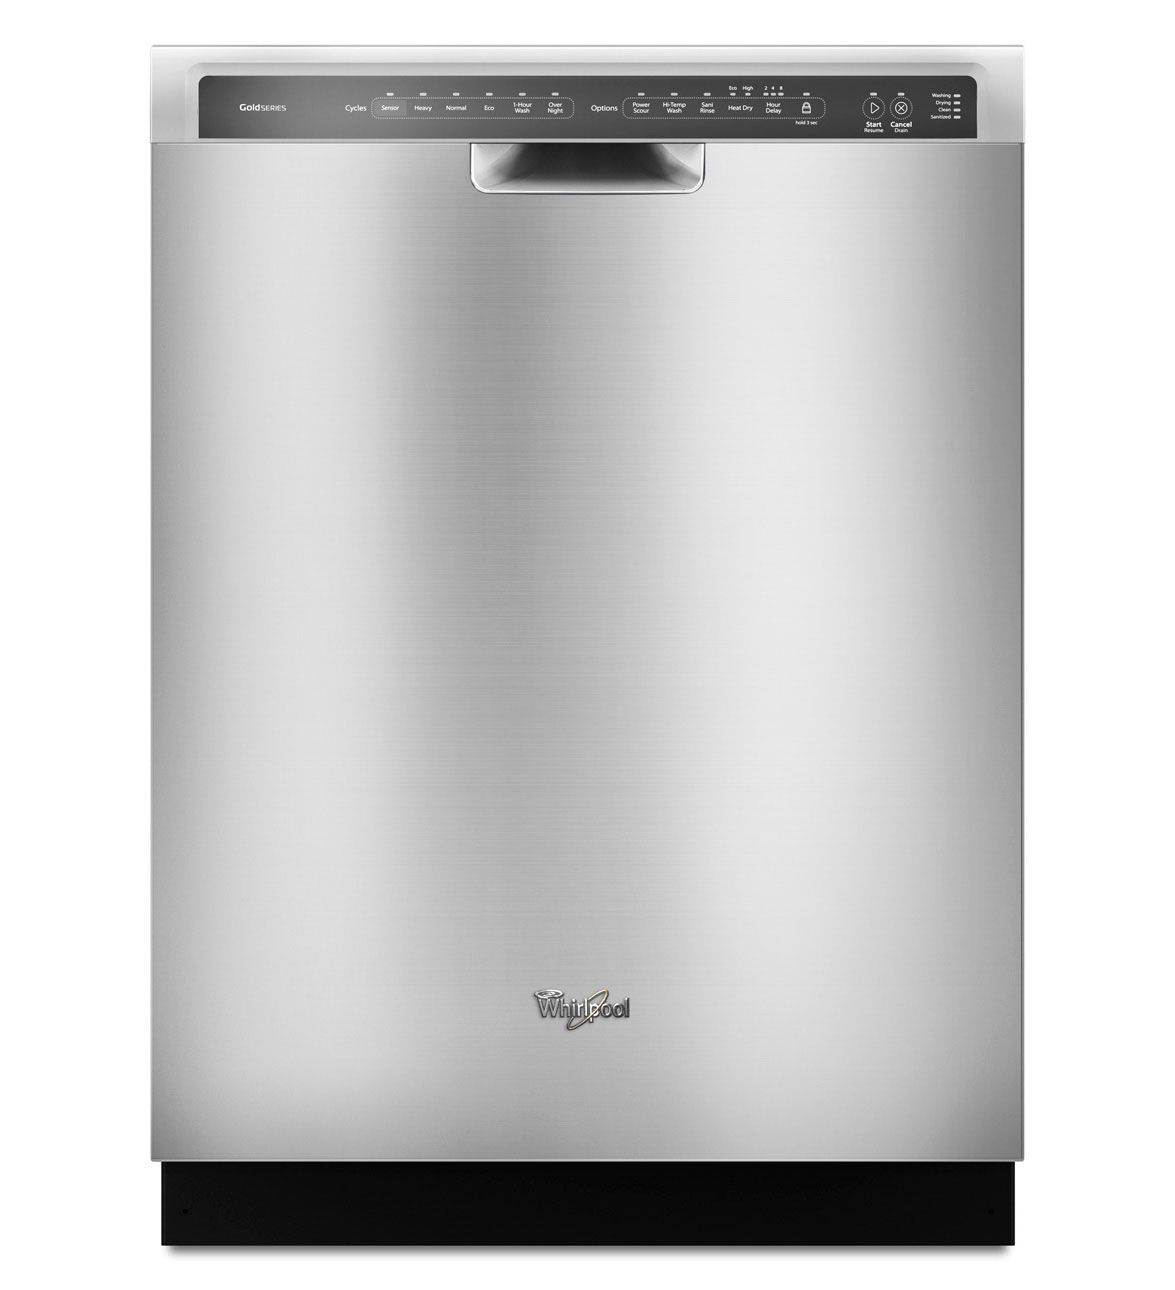 Another #Christmas wish list item: @Whirlpool Gold® Dishwasher with ...